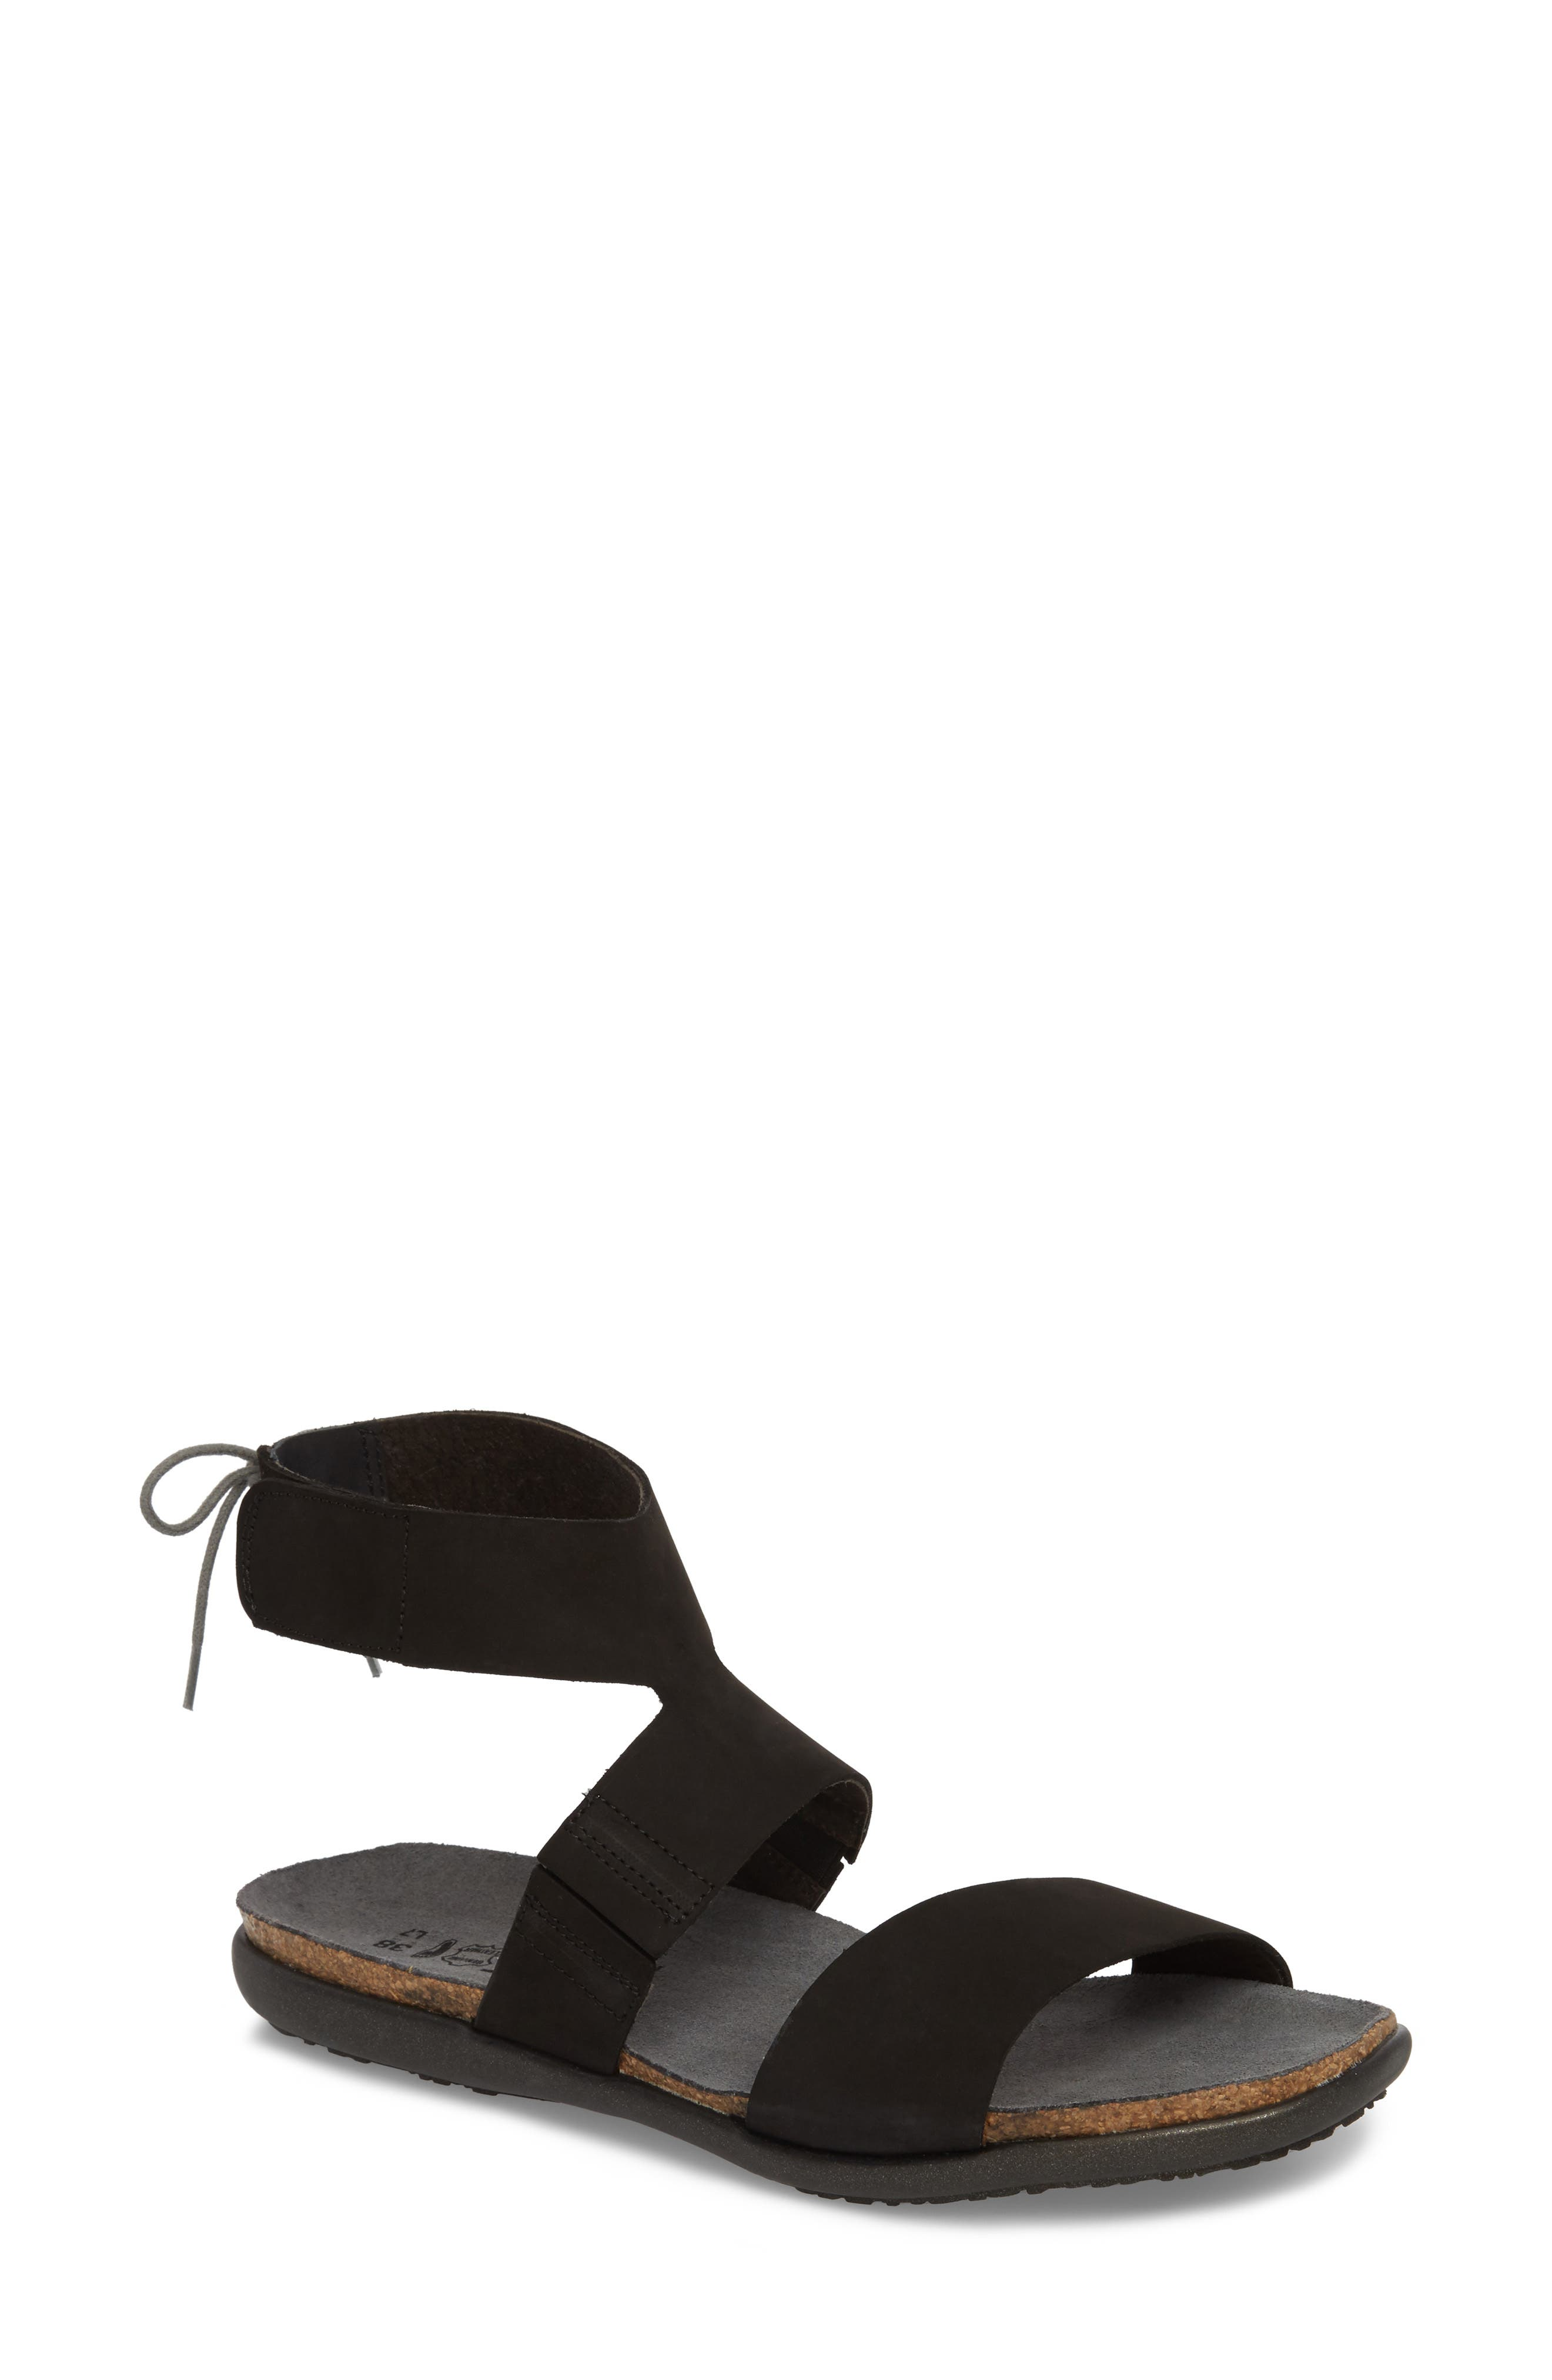 Larissa Ankle Strap Sandal,                         Main,                         color,